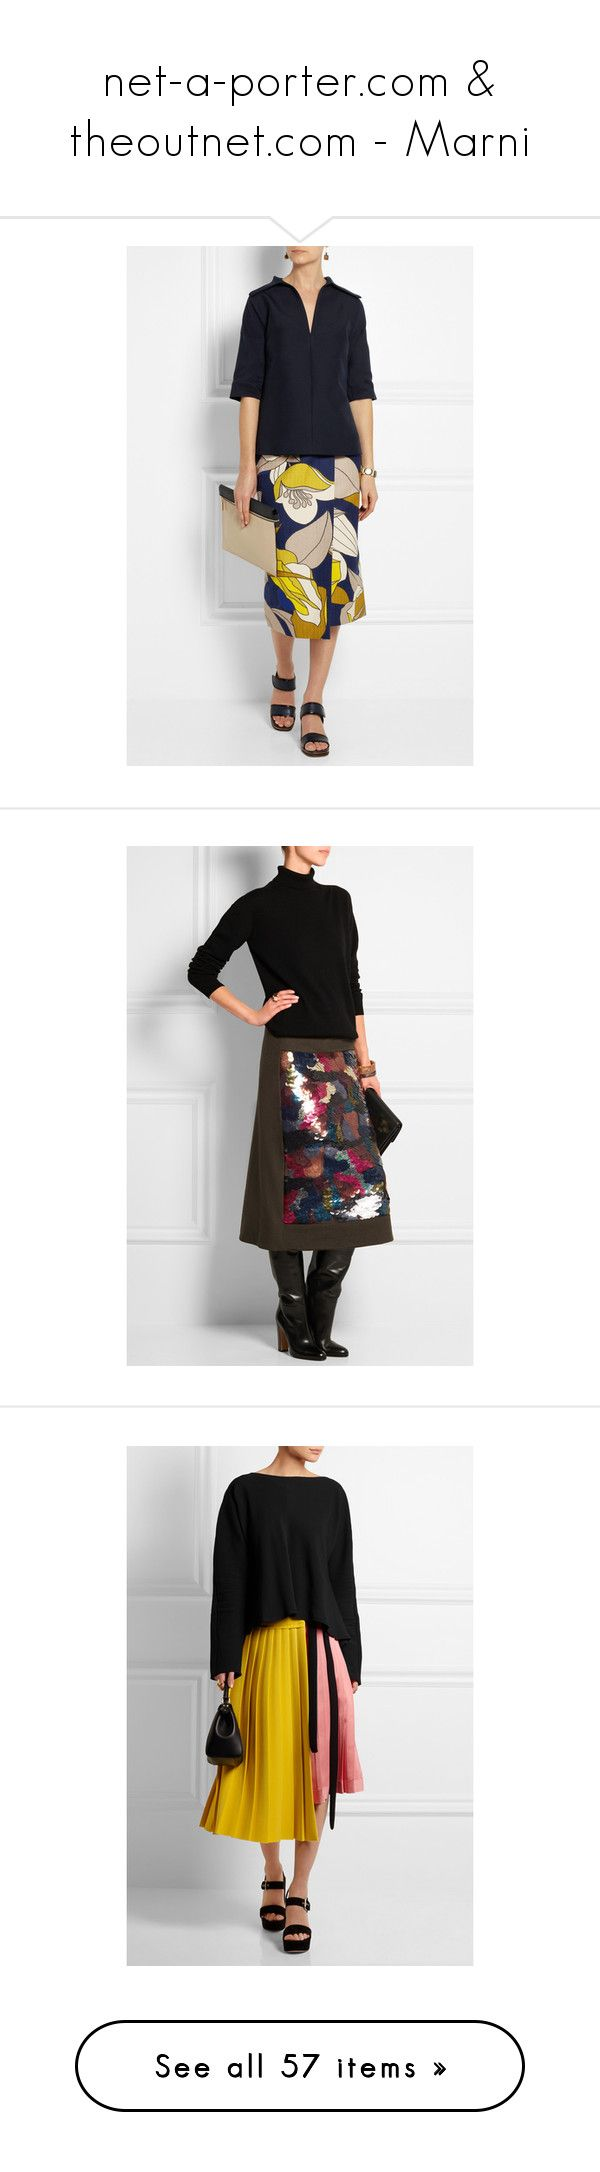 """""""net-a-porter.com & theoutnet.com - Marni"""" by tinusia777 ❤ liked on Polyvore featuring skirts, multi color skirt, floral print midi skirt, floral print skirt, floral skirts, floral midi skirts, mid-calf skirts, calf length skirts, wool skirt and embellished skirt"""